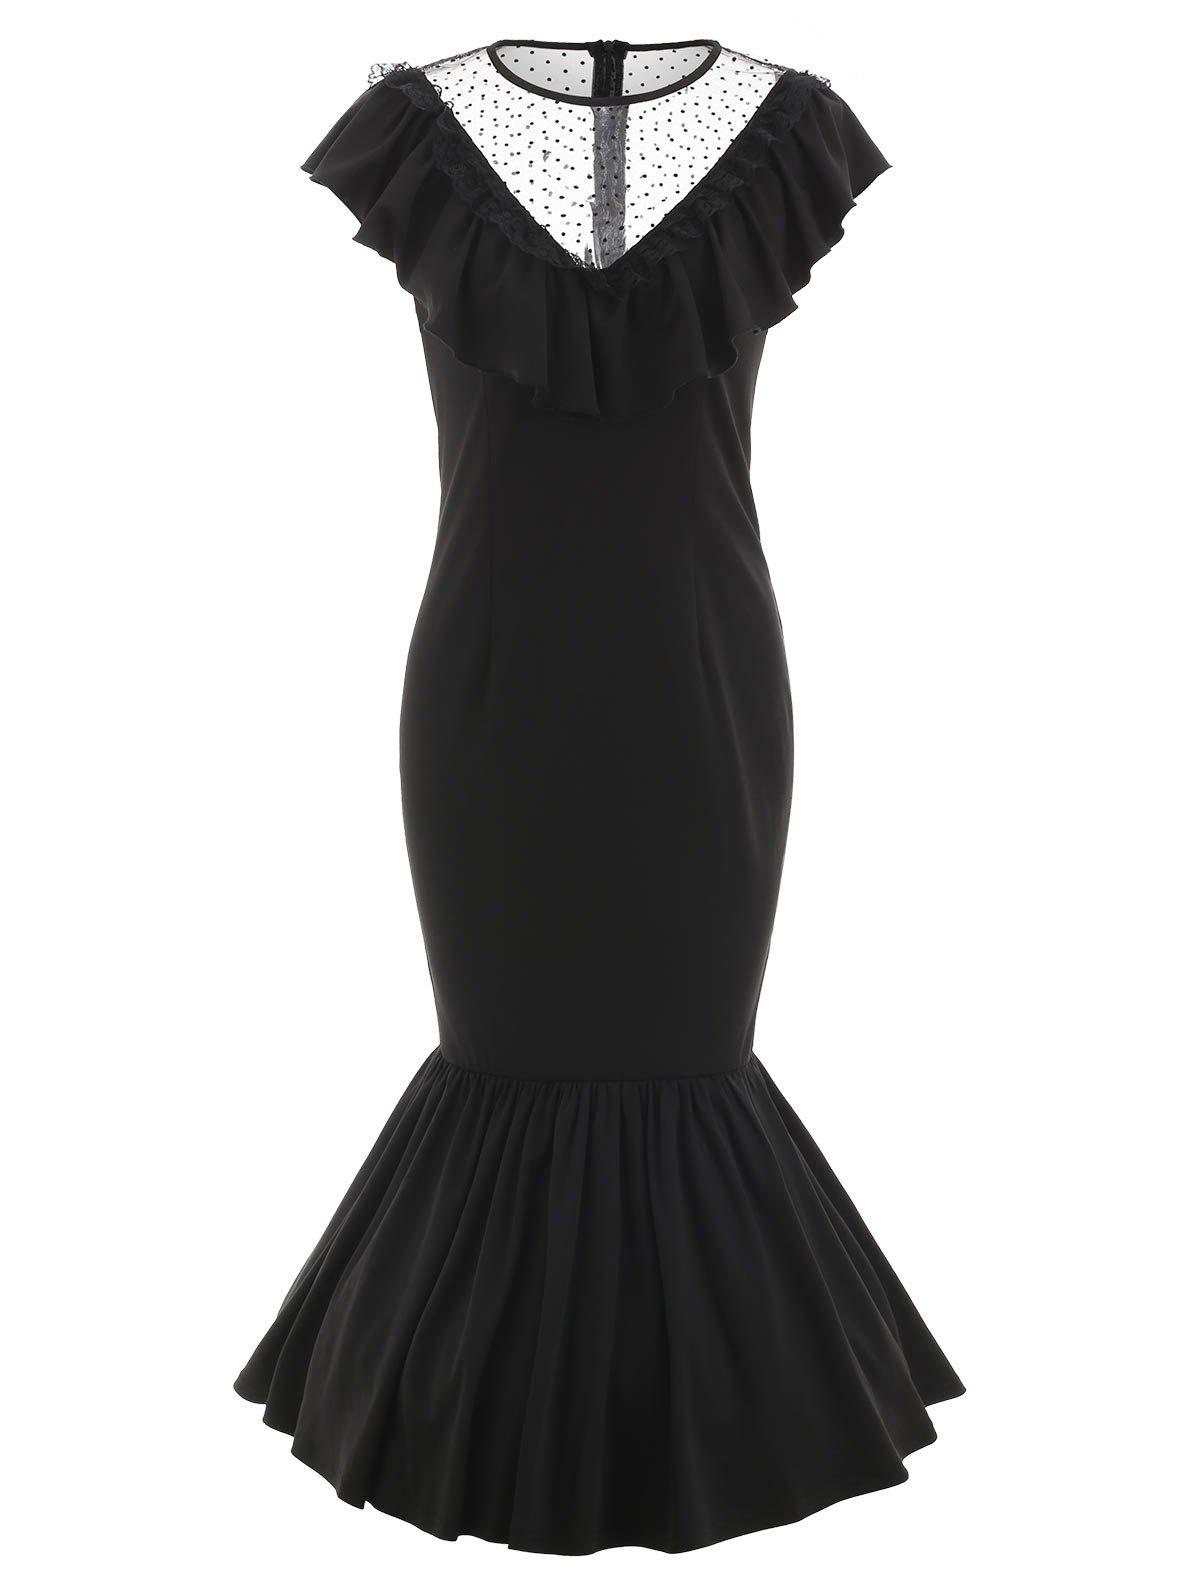 Lace Panel Drop Waist Maxi Flounce Dress - BLACK L